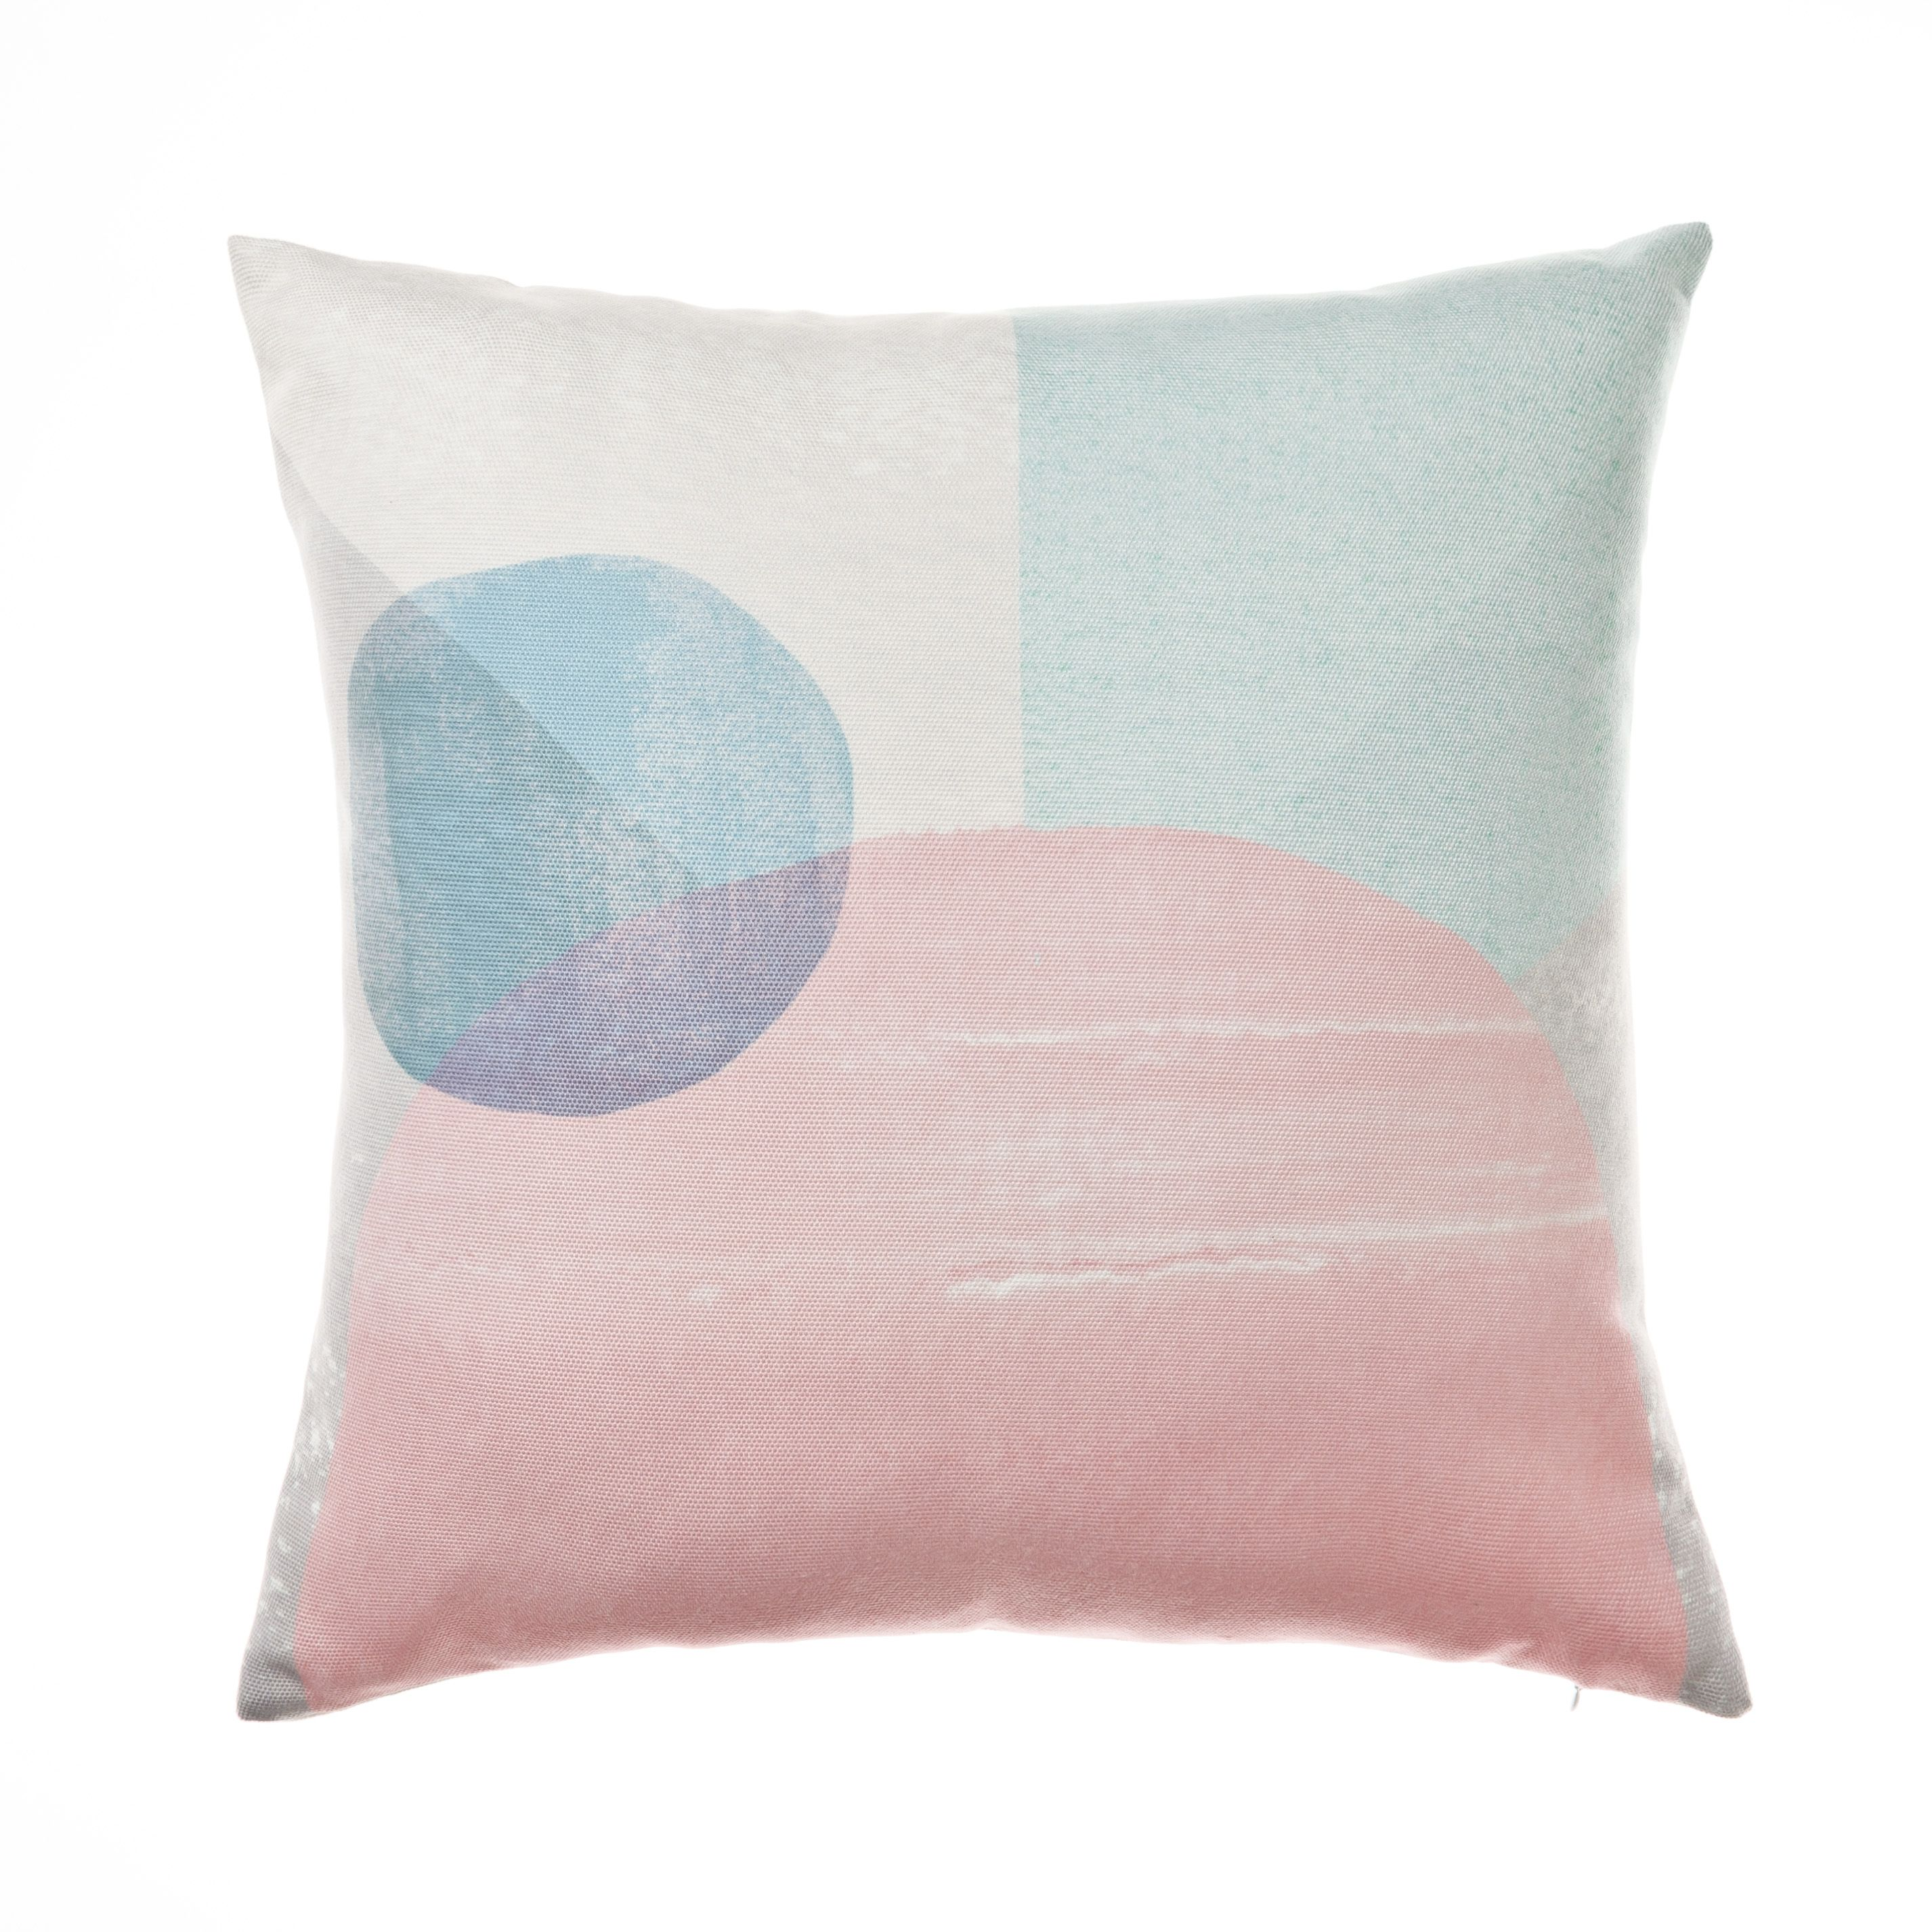 Adair S Cushion